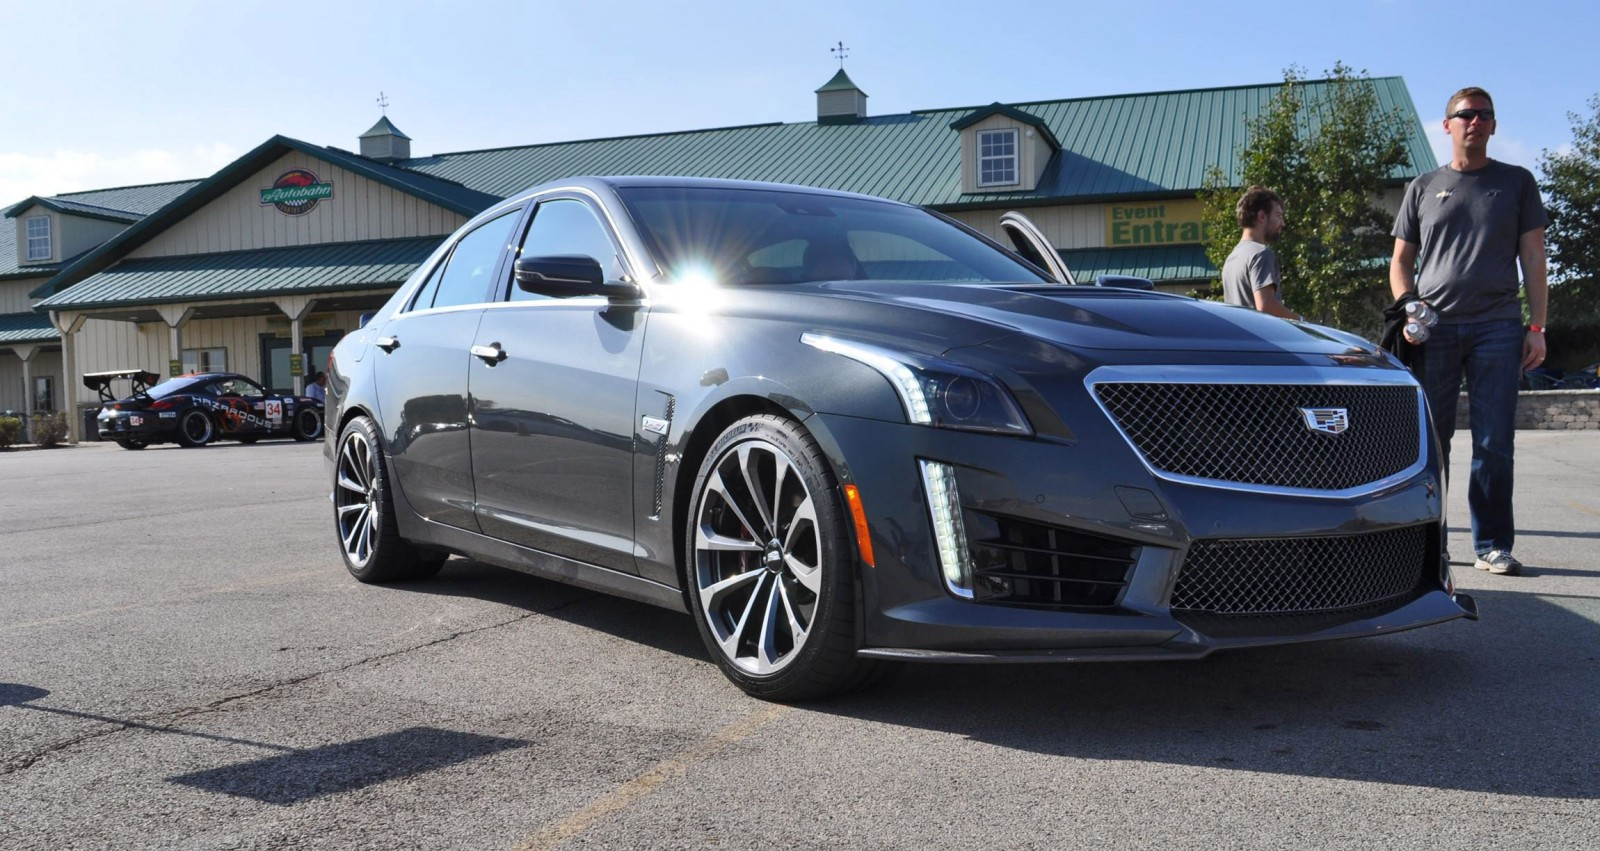 2016 cadillac cts v phantom grey and carbon package 28. Black Bedroom Furniture Sets. Home Design Ideas